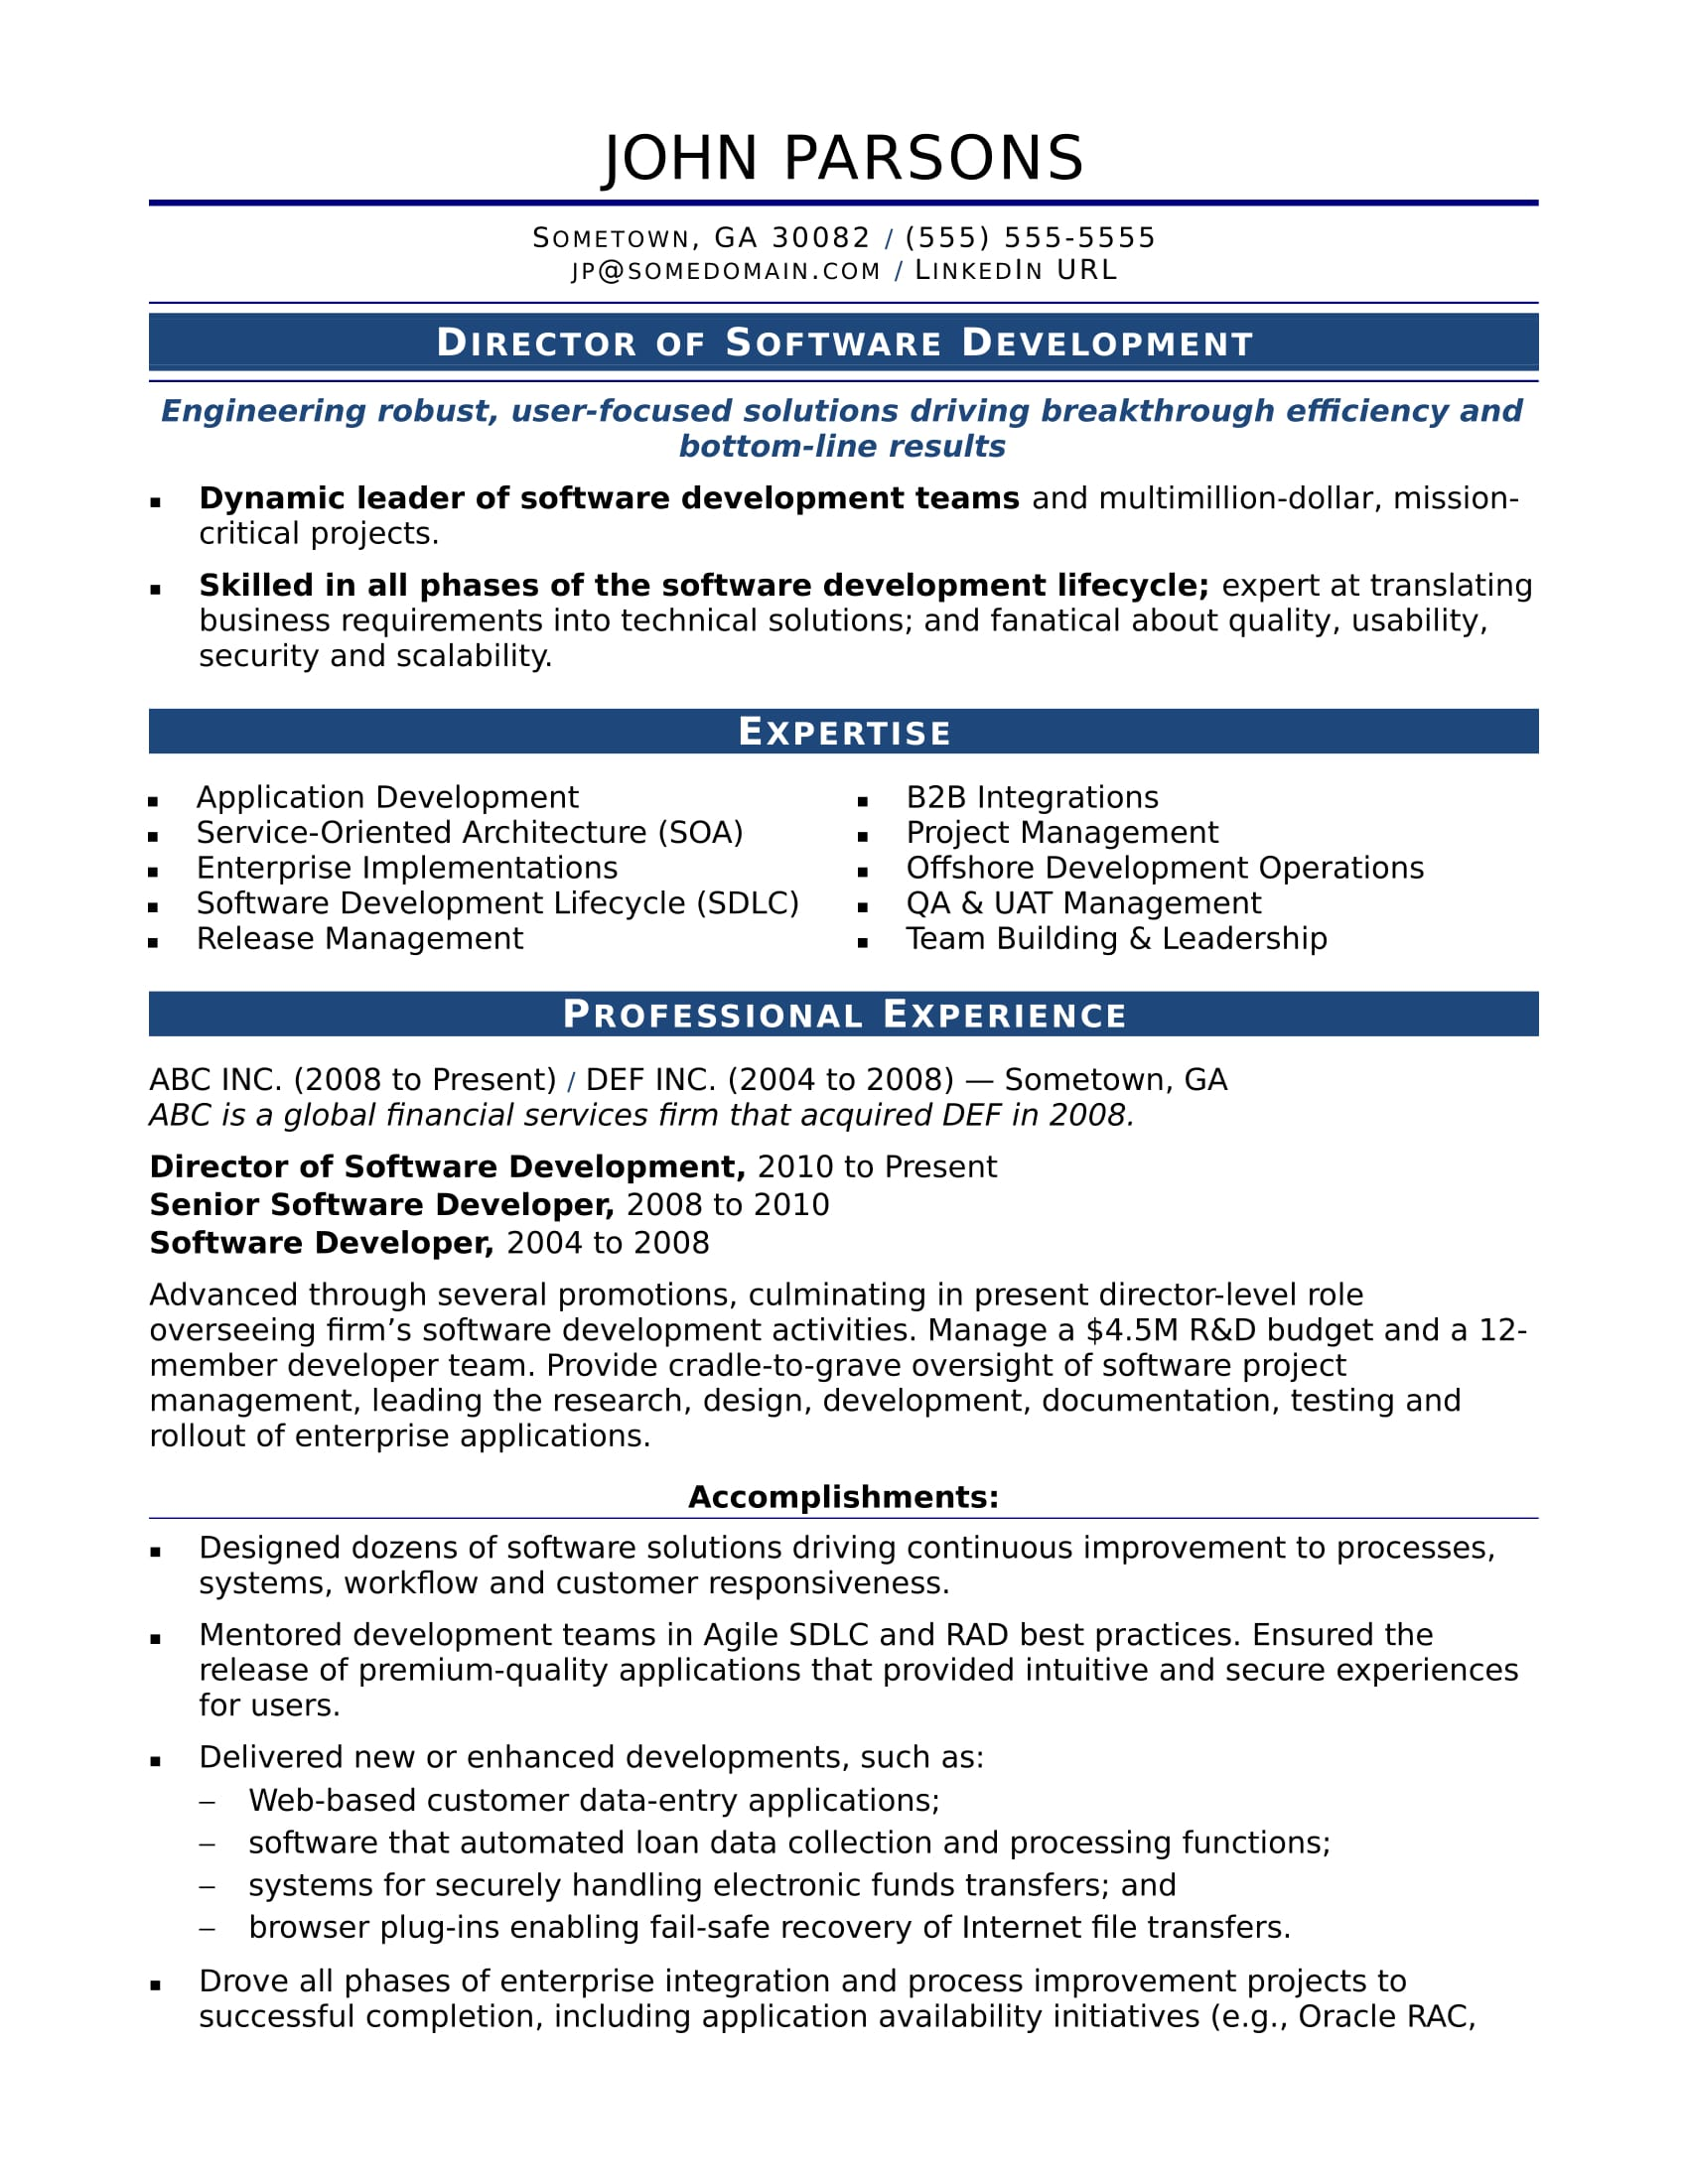 Perfect Sample Resume For An Experienced IT Developer For Application Developer Resume